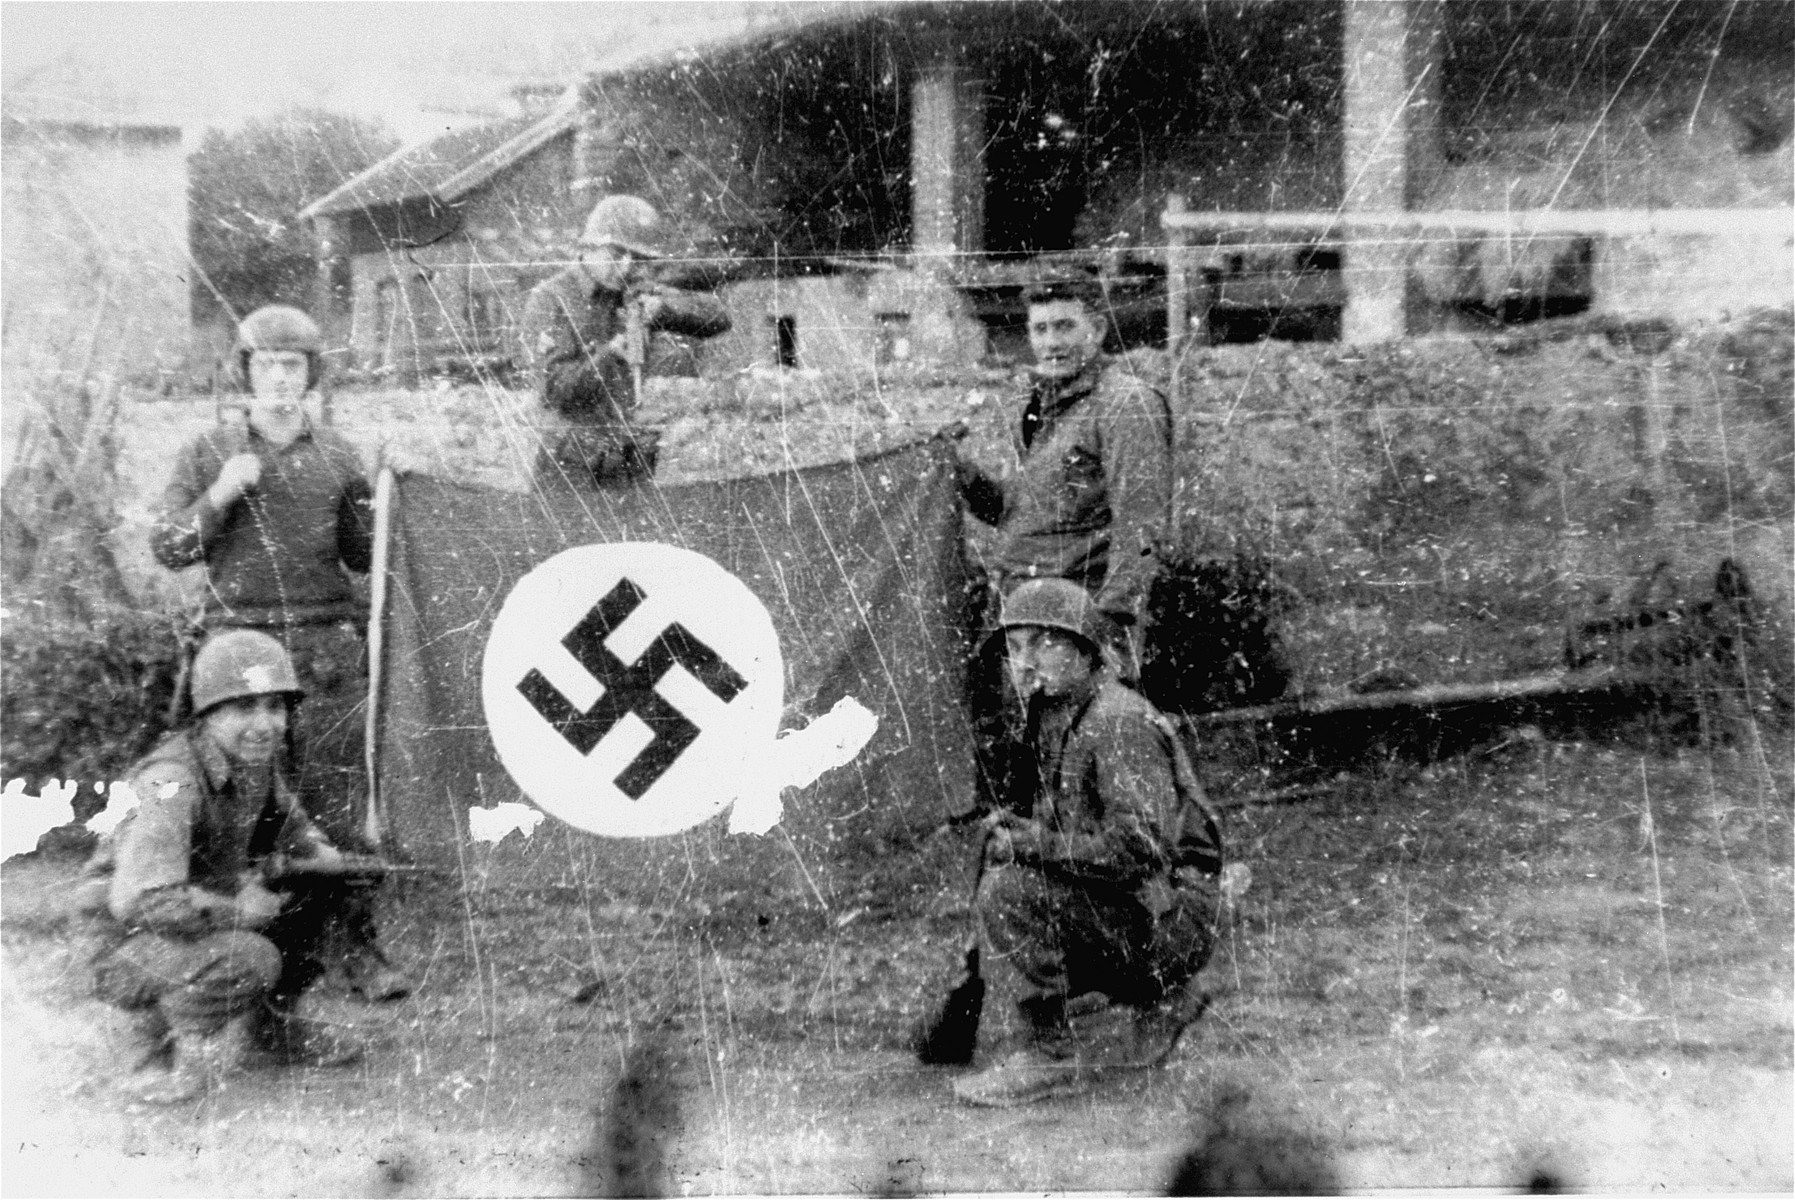 American soldiers pose with a captured Nazi flag after liberating the Mauthausen concentration camp.